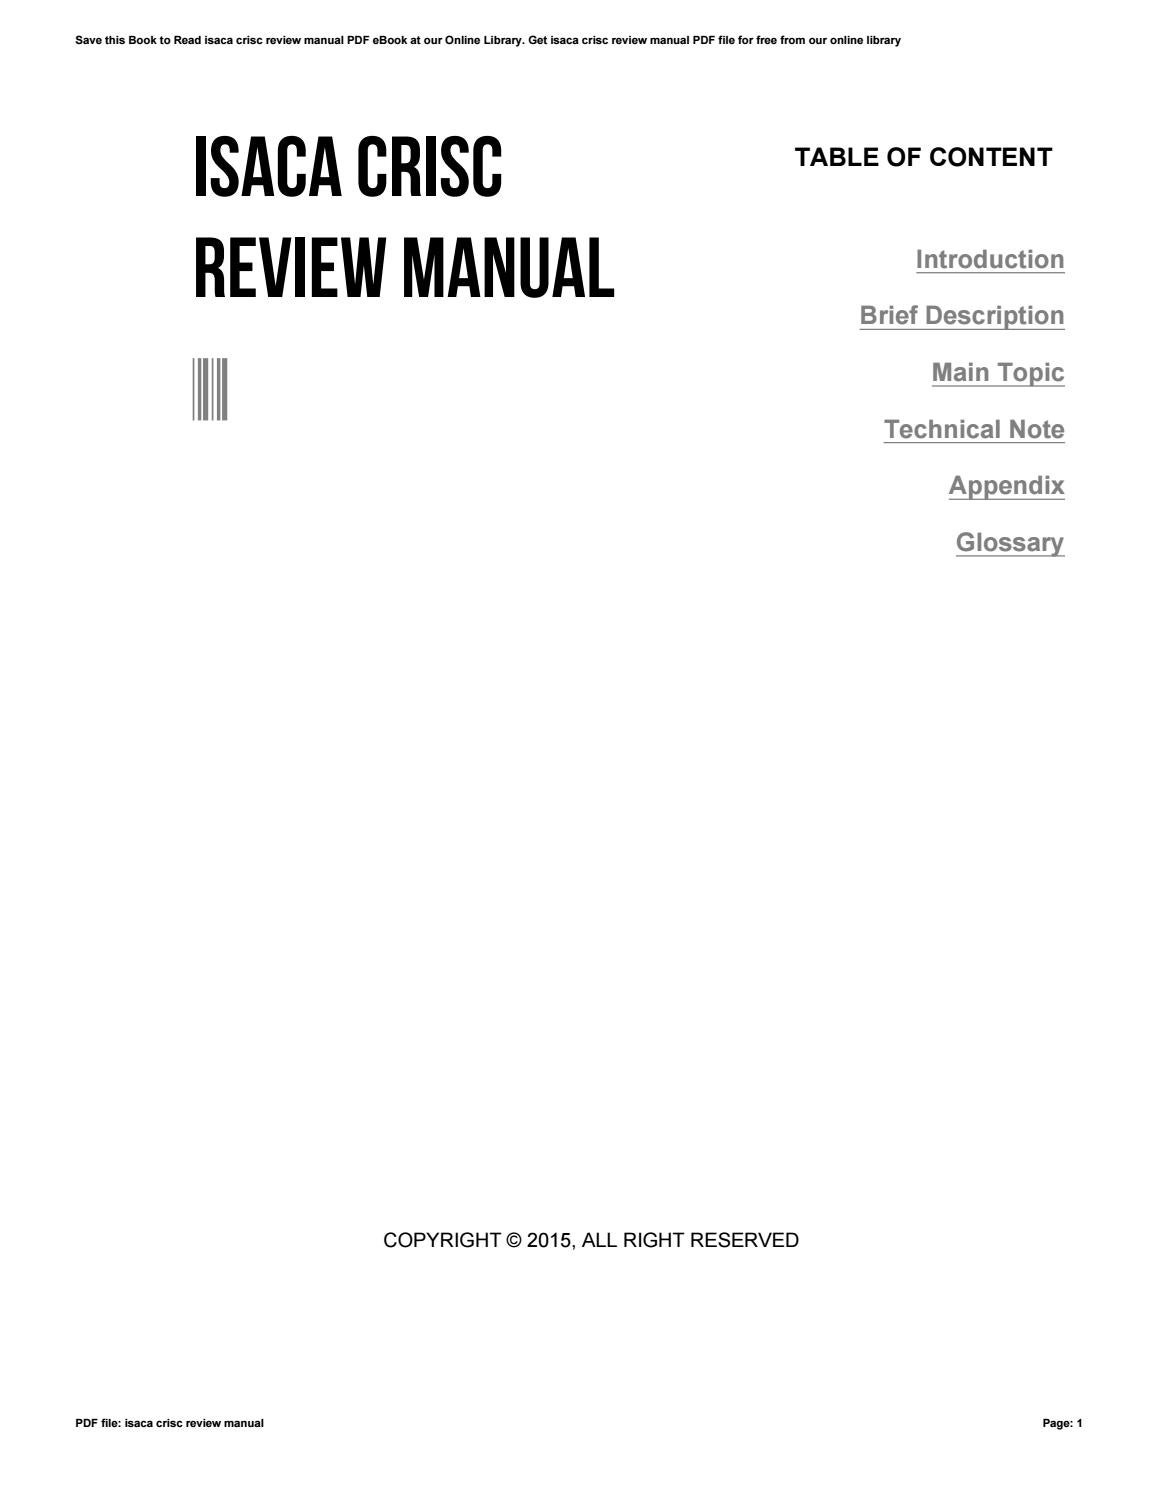 Crisc Review Manual 6th Edition Pdf Free Download